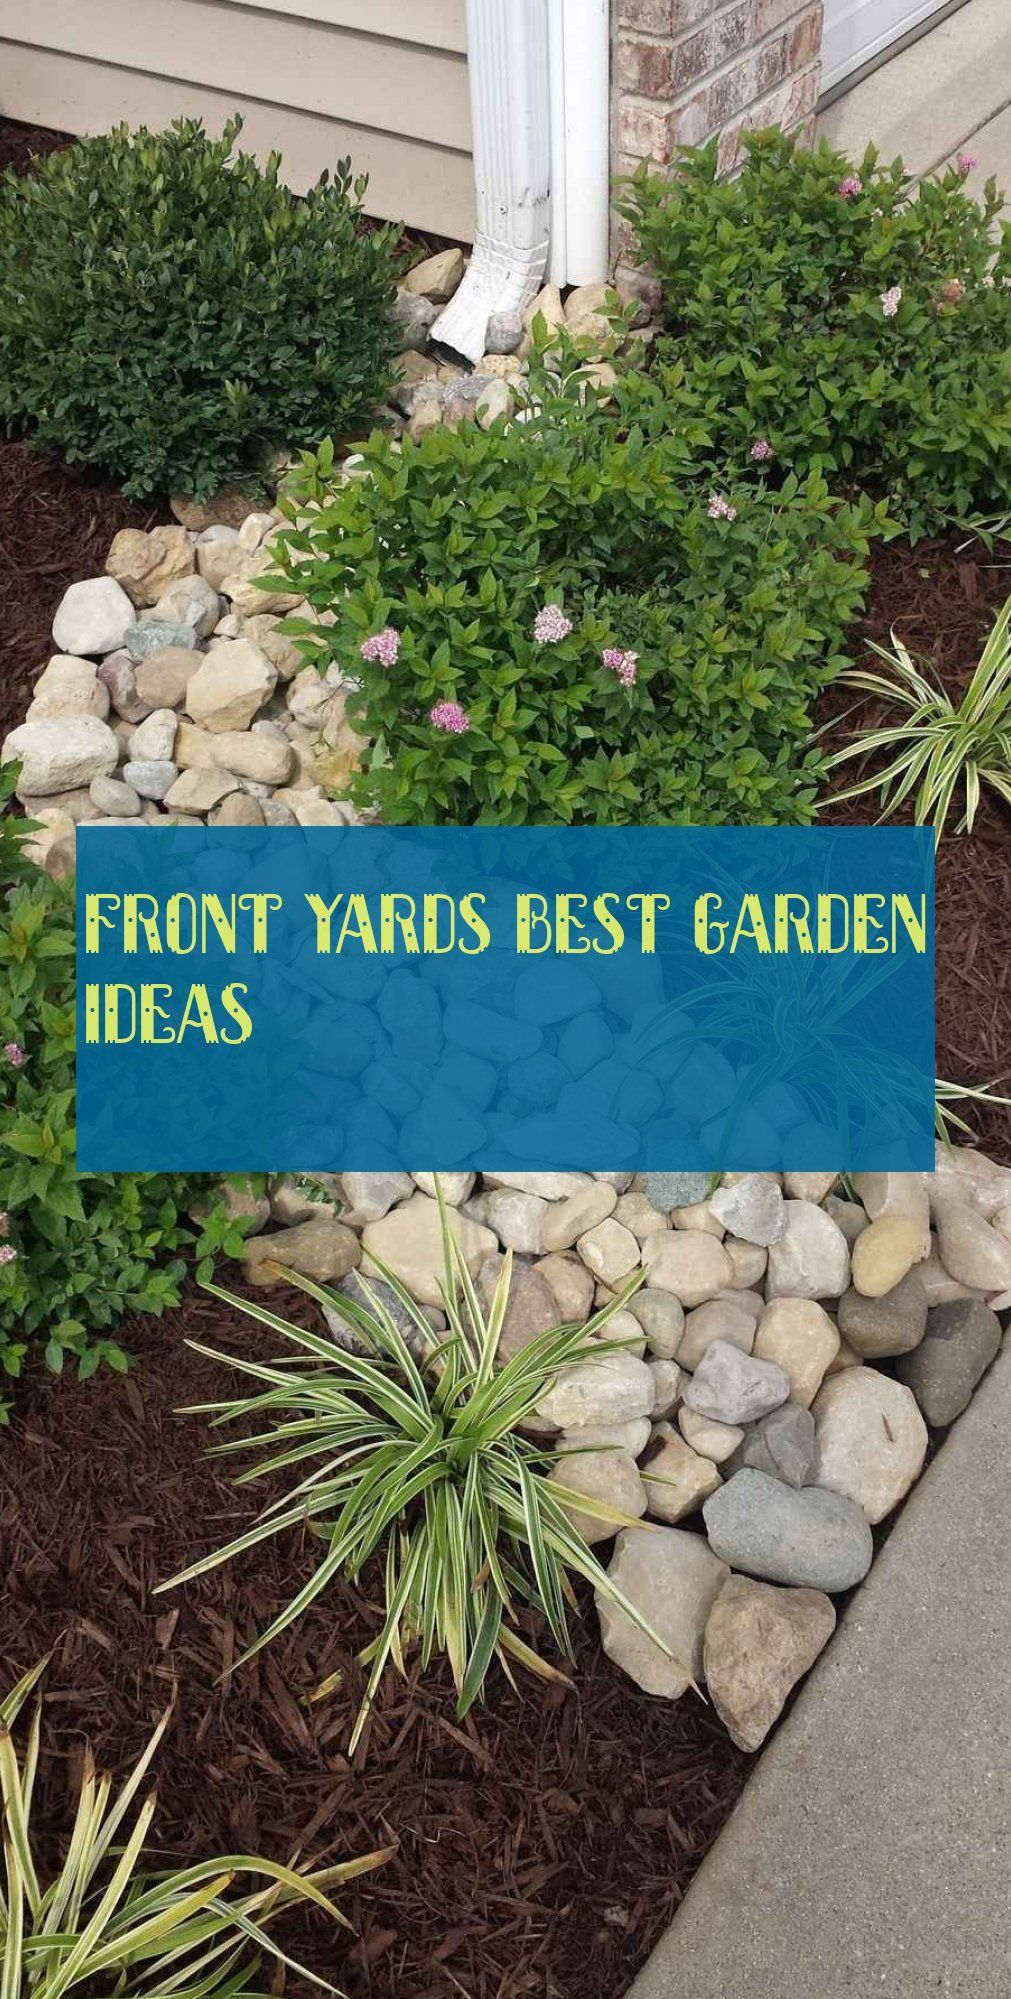 Front Yards best garden ideas